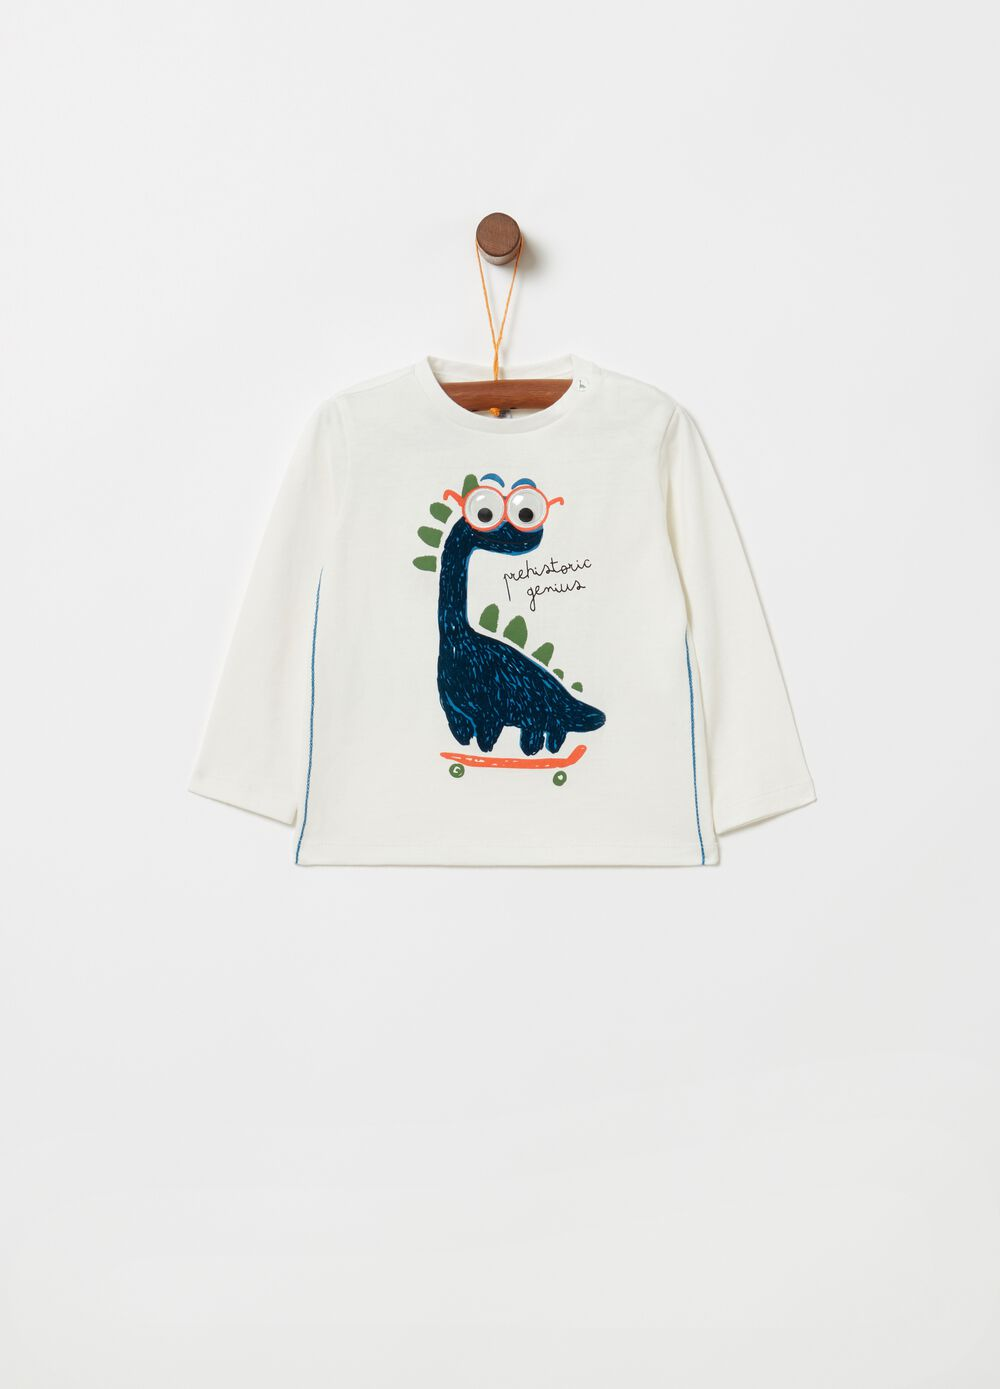 100% organic cotton T-shirt with dinosaur print